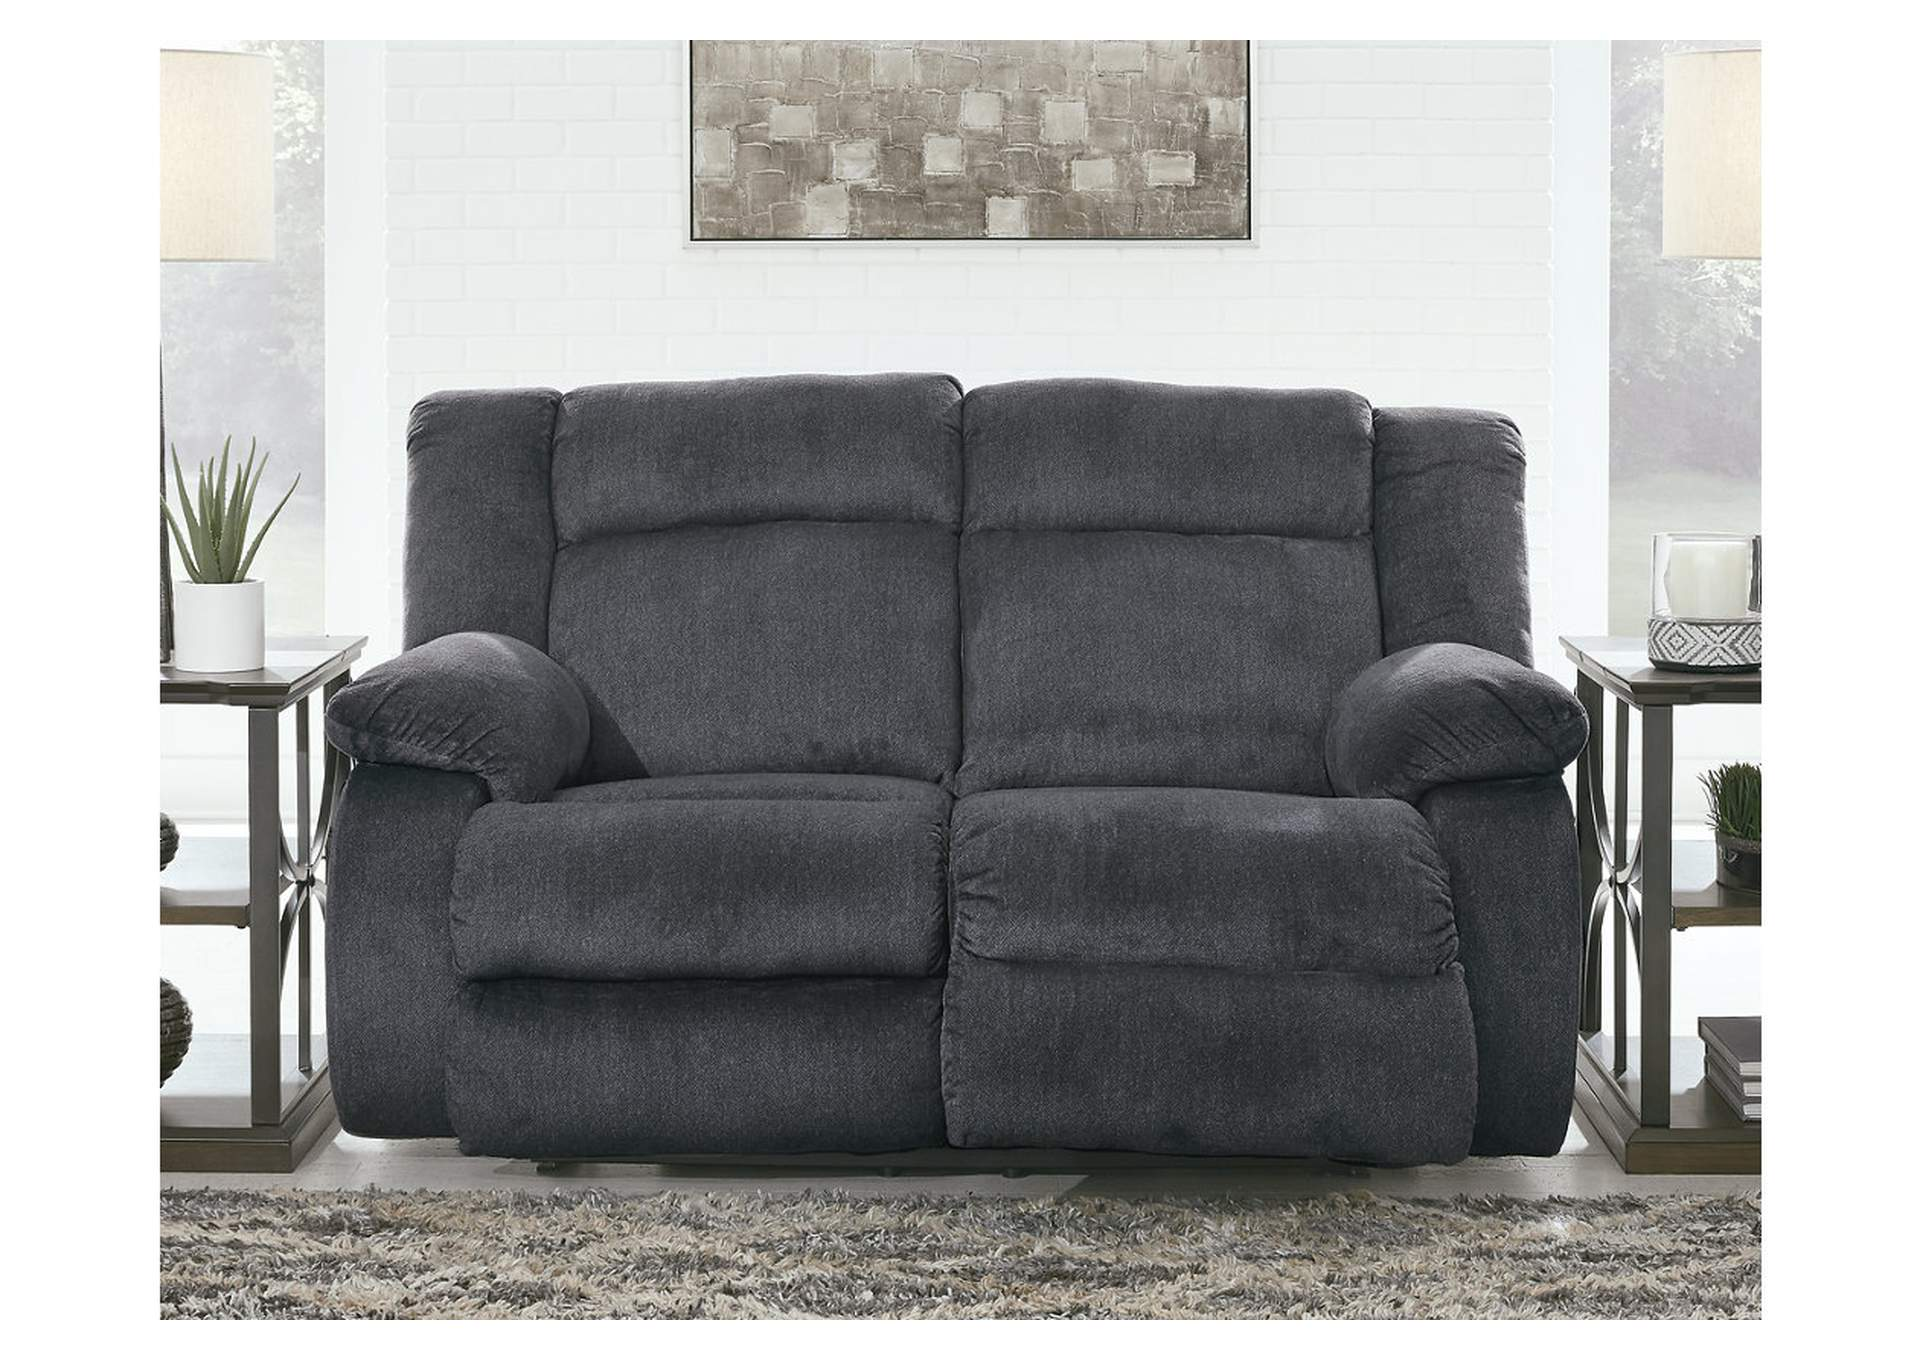 Burkner Power Reclining Loveseat,Signature Design By Ashley